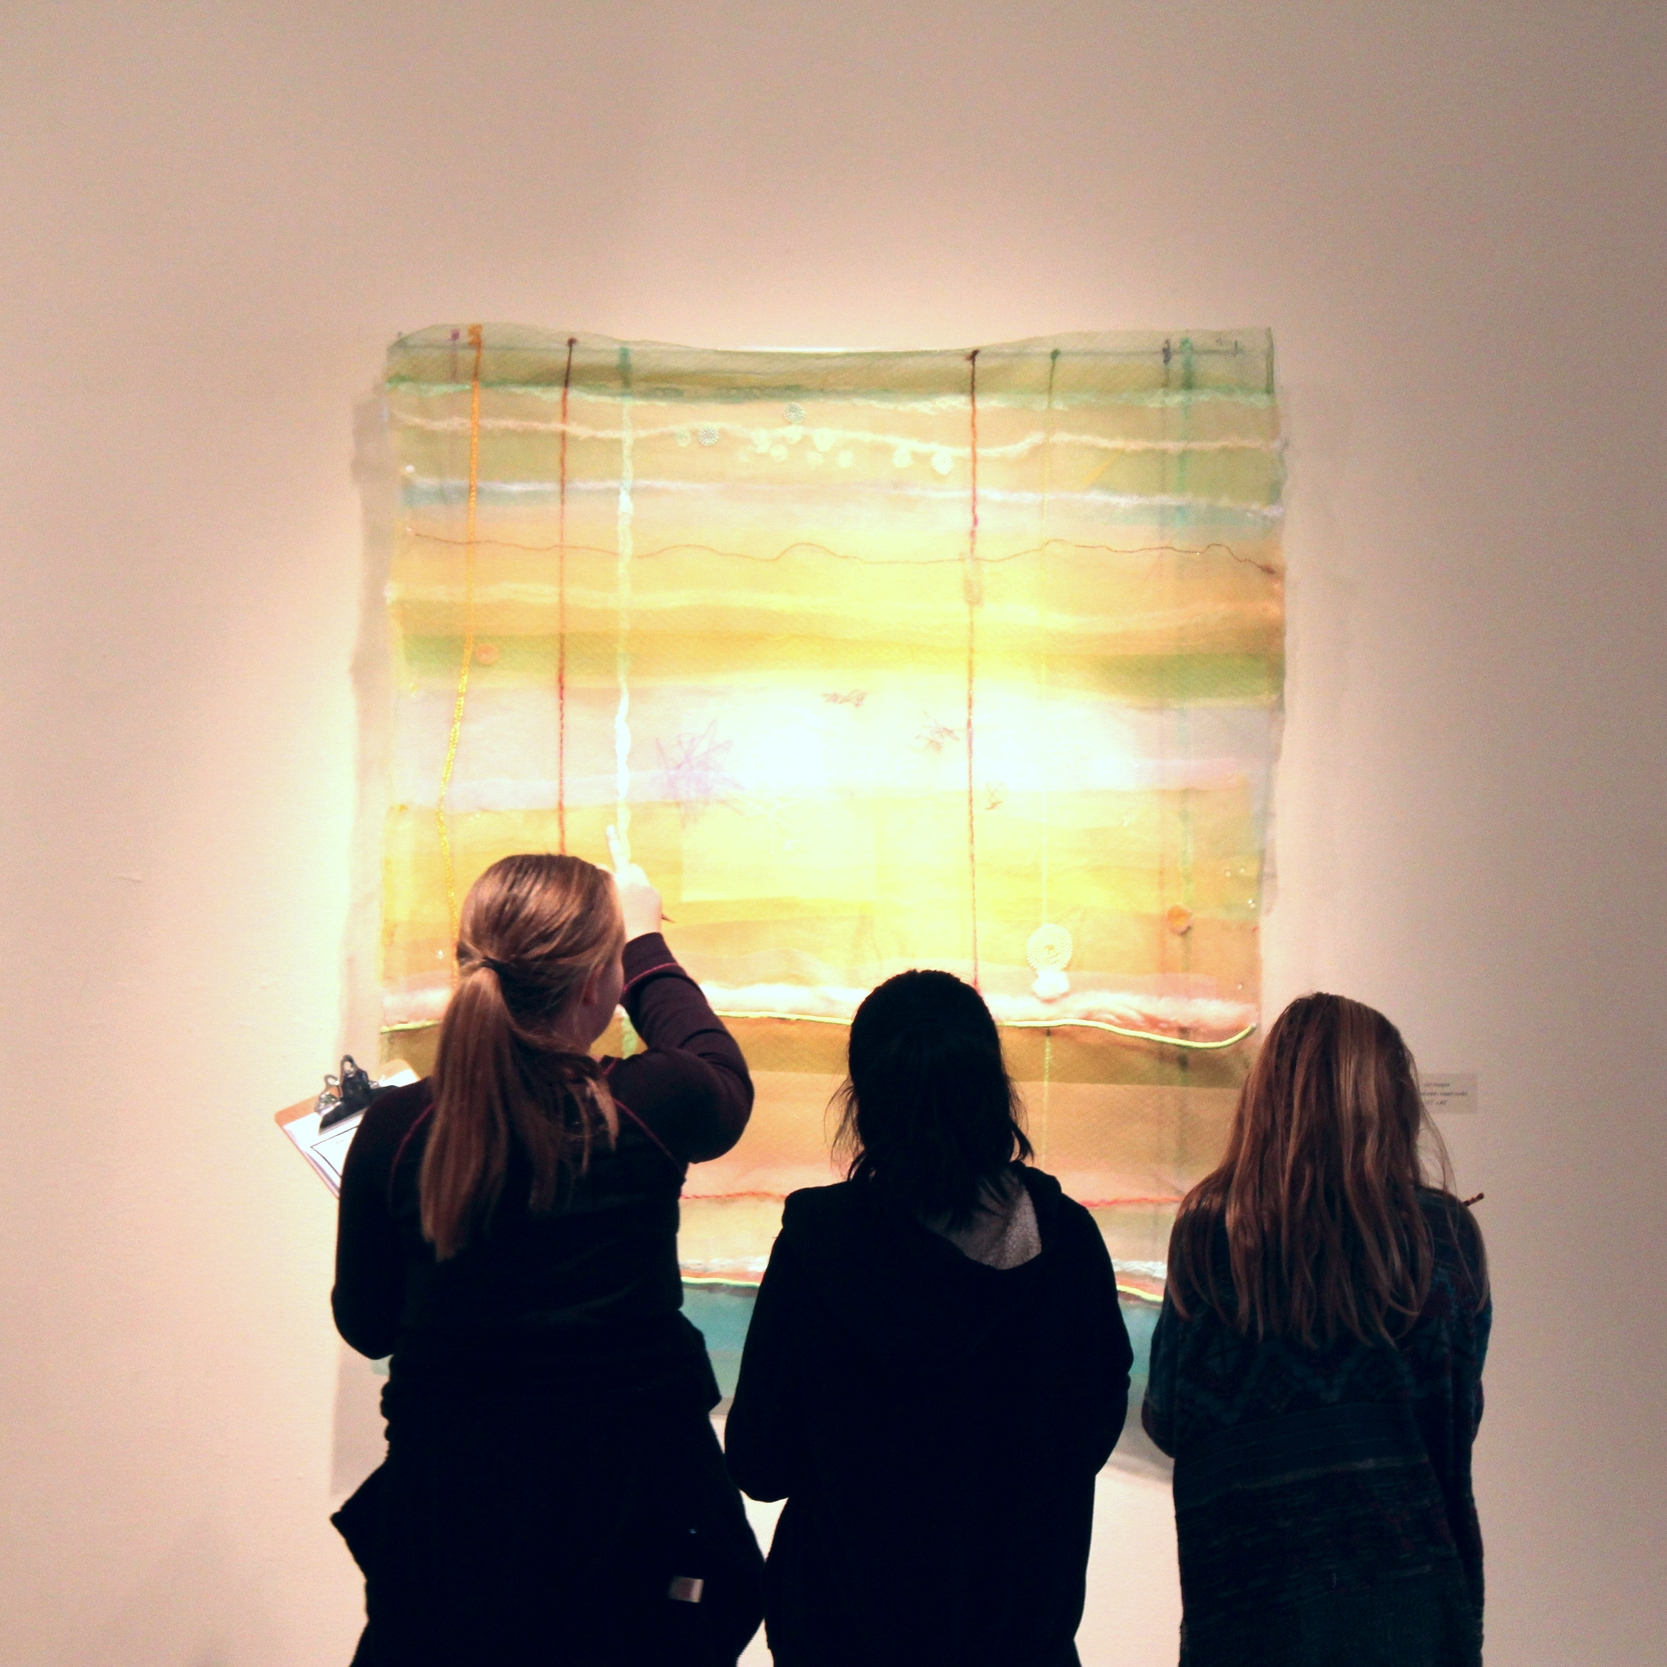 Denton ISD students discuss the work of artist Cathy Breslaw,developing their own interpretations using creative writing and sketching in the galleries.